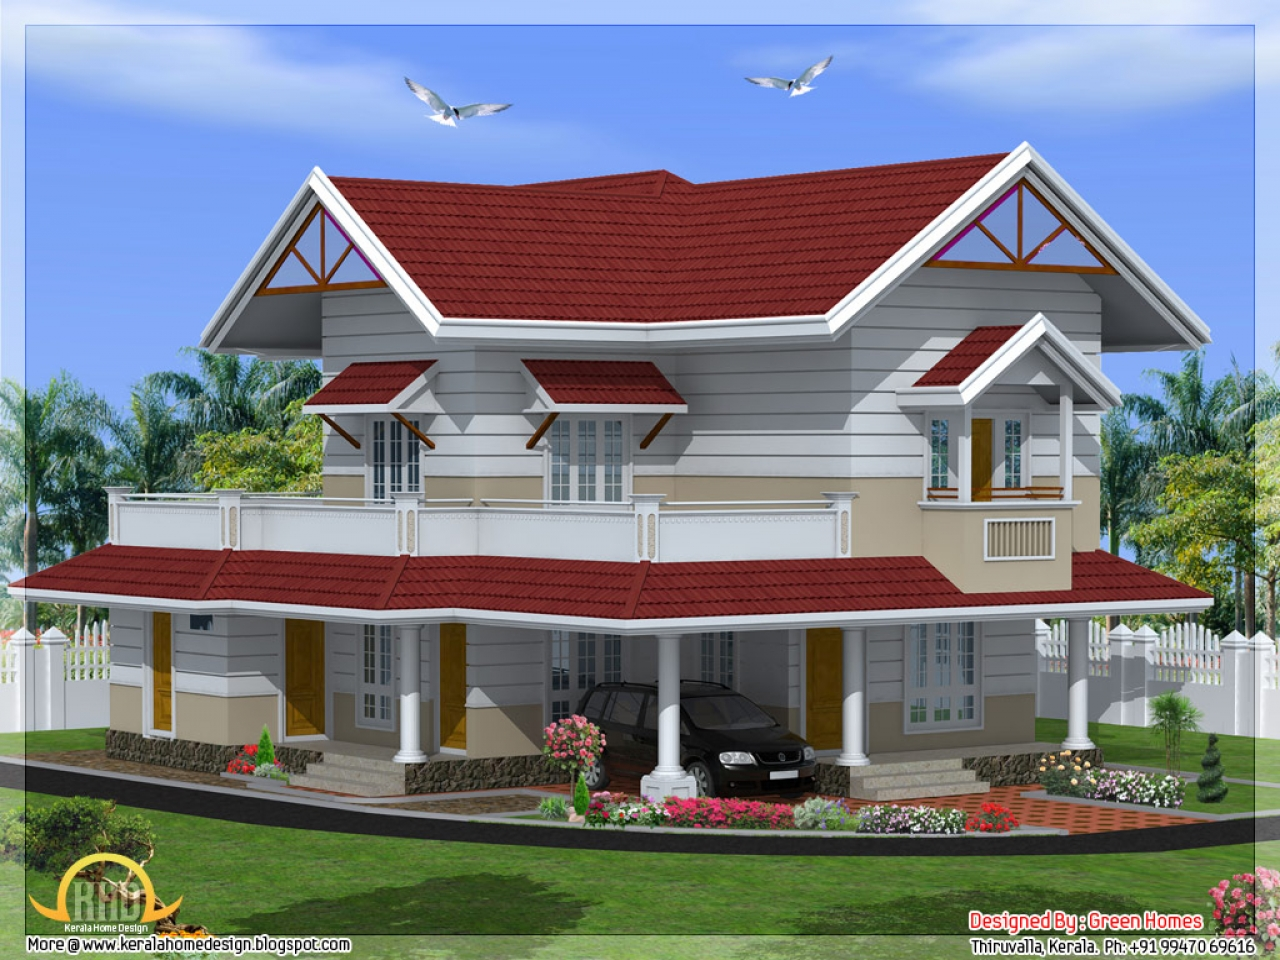 3 bedroom houses in kenya 3 bedroom home design kerala for Kerala home style 3 bedroom